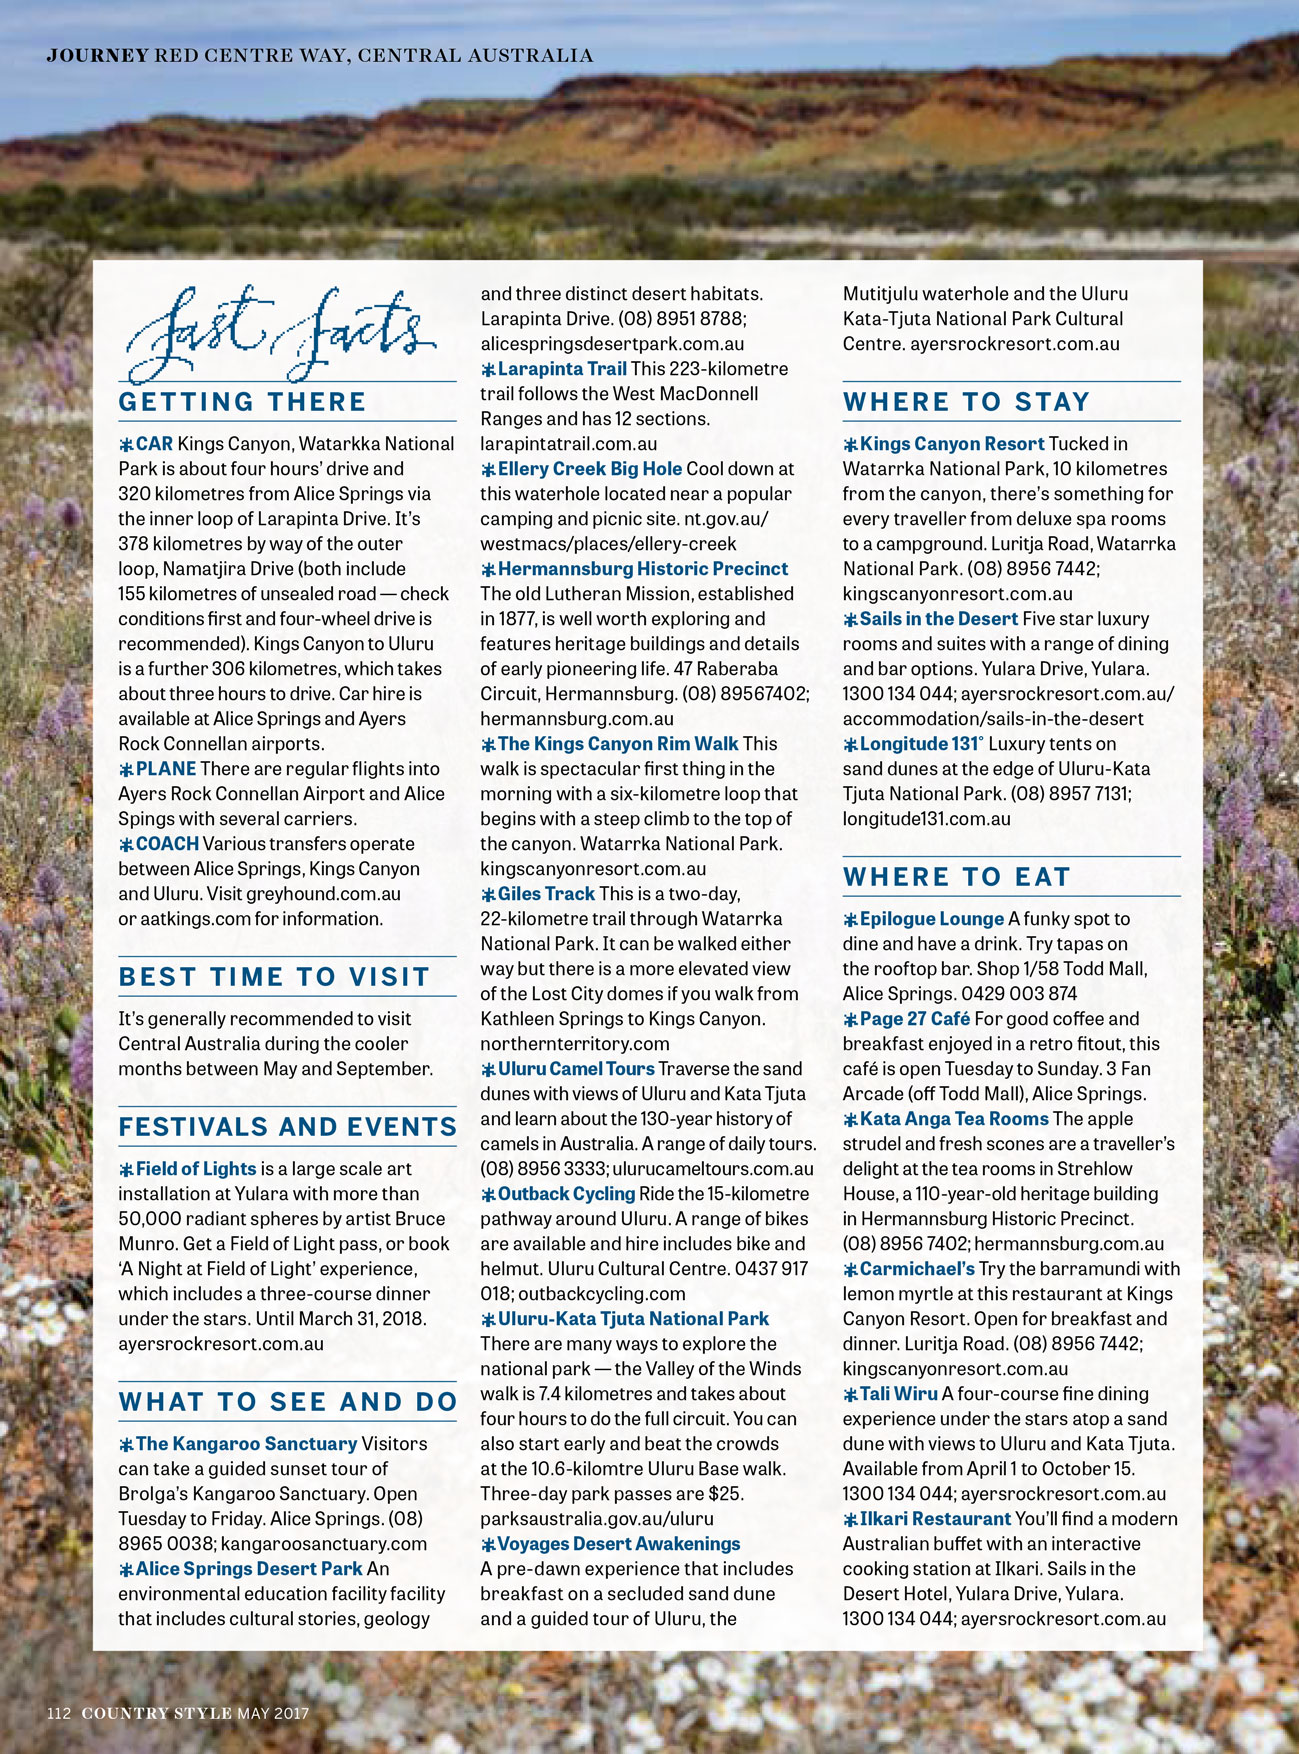 Australian+Country+Style+May+2017+Journey+wonderland+by+Claire+Mactaggart+4